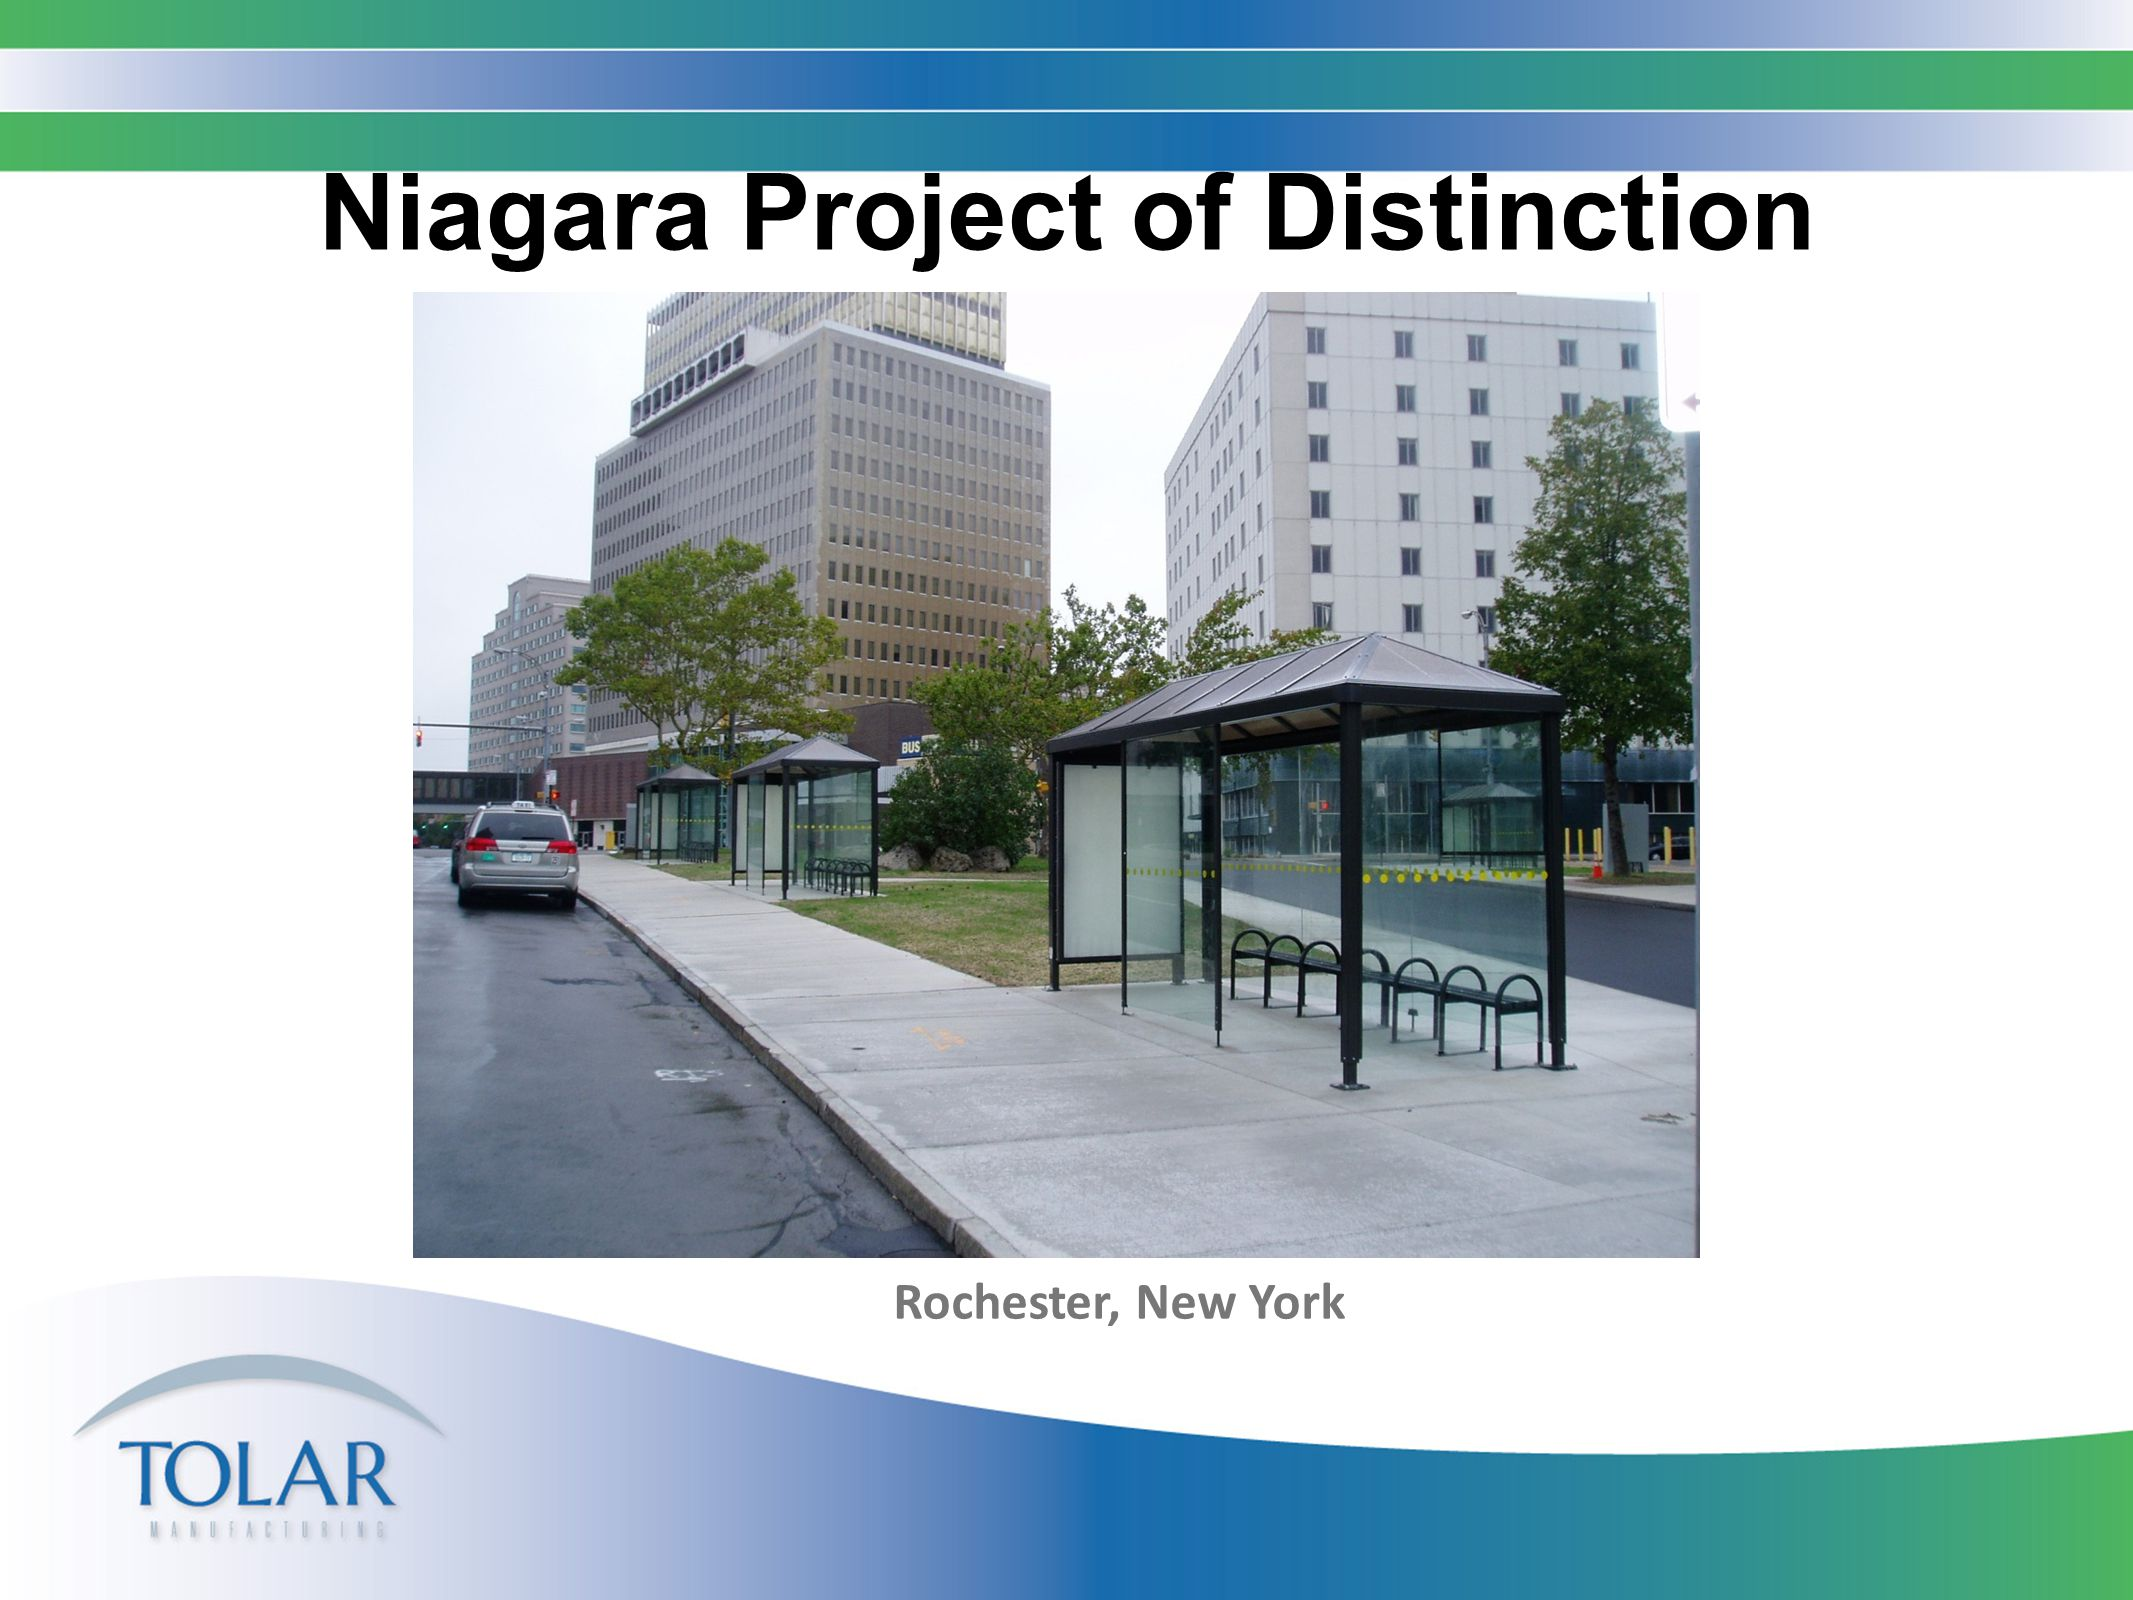 Niagara Project of Distinction Rochester, New York